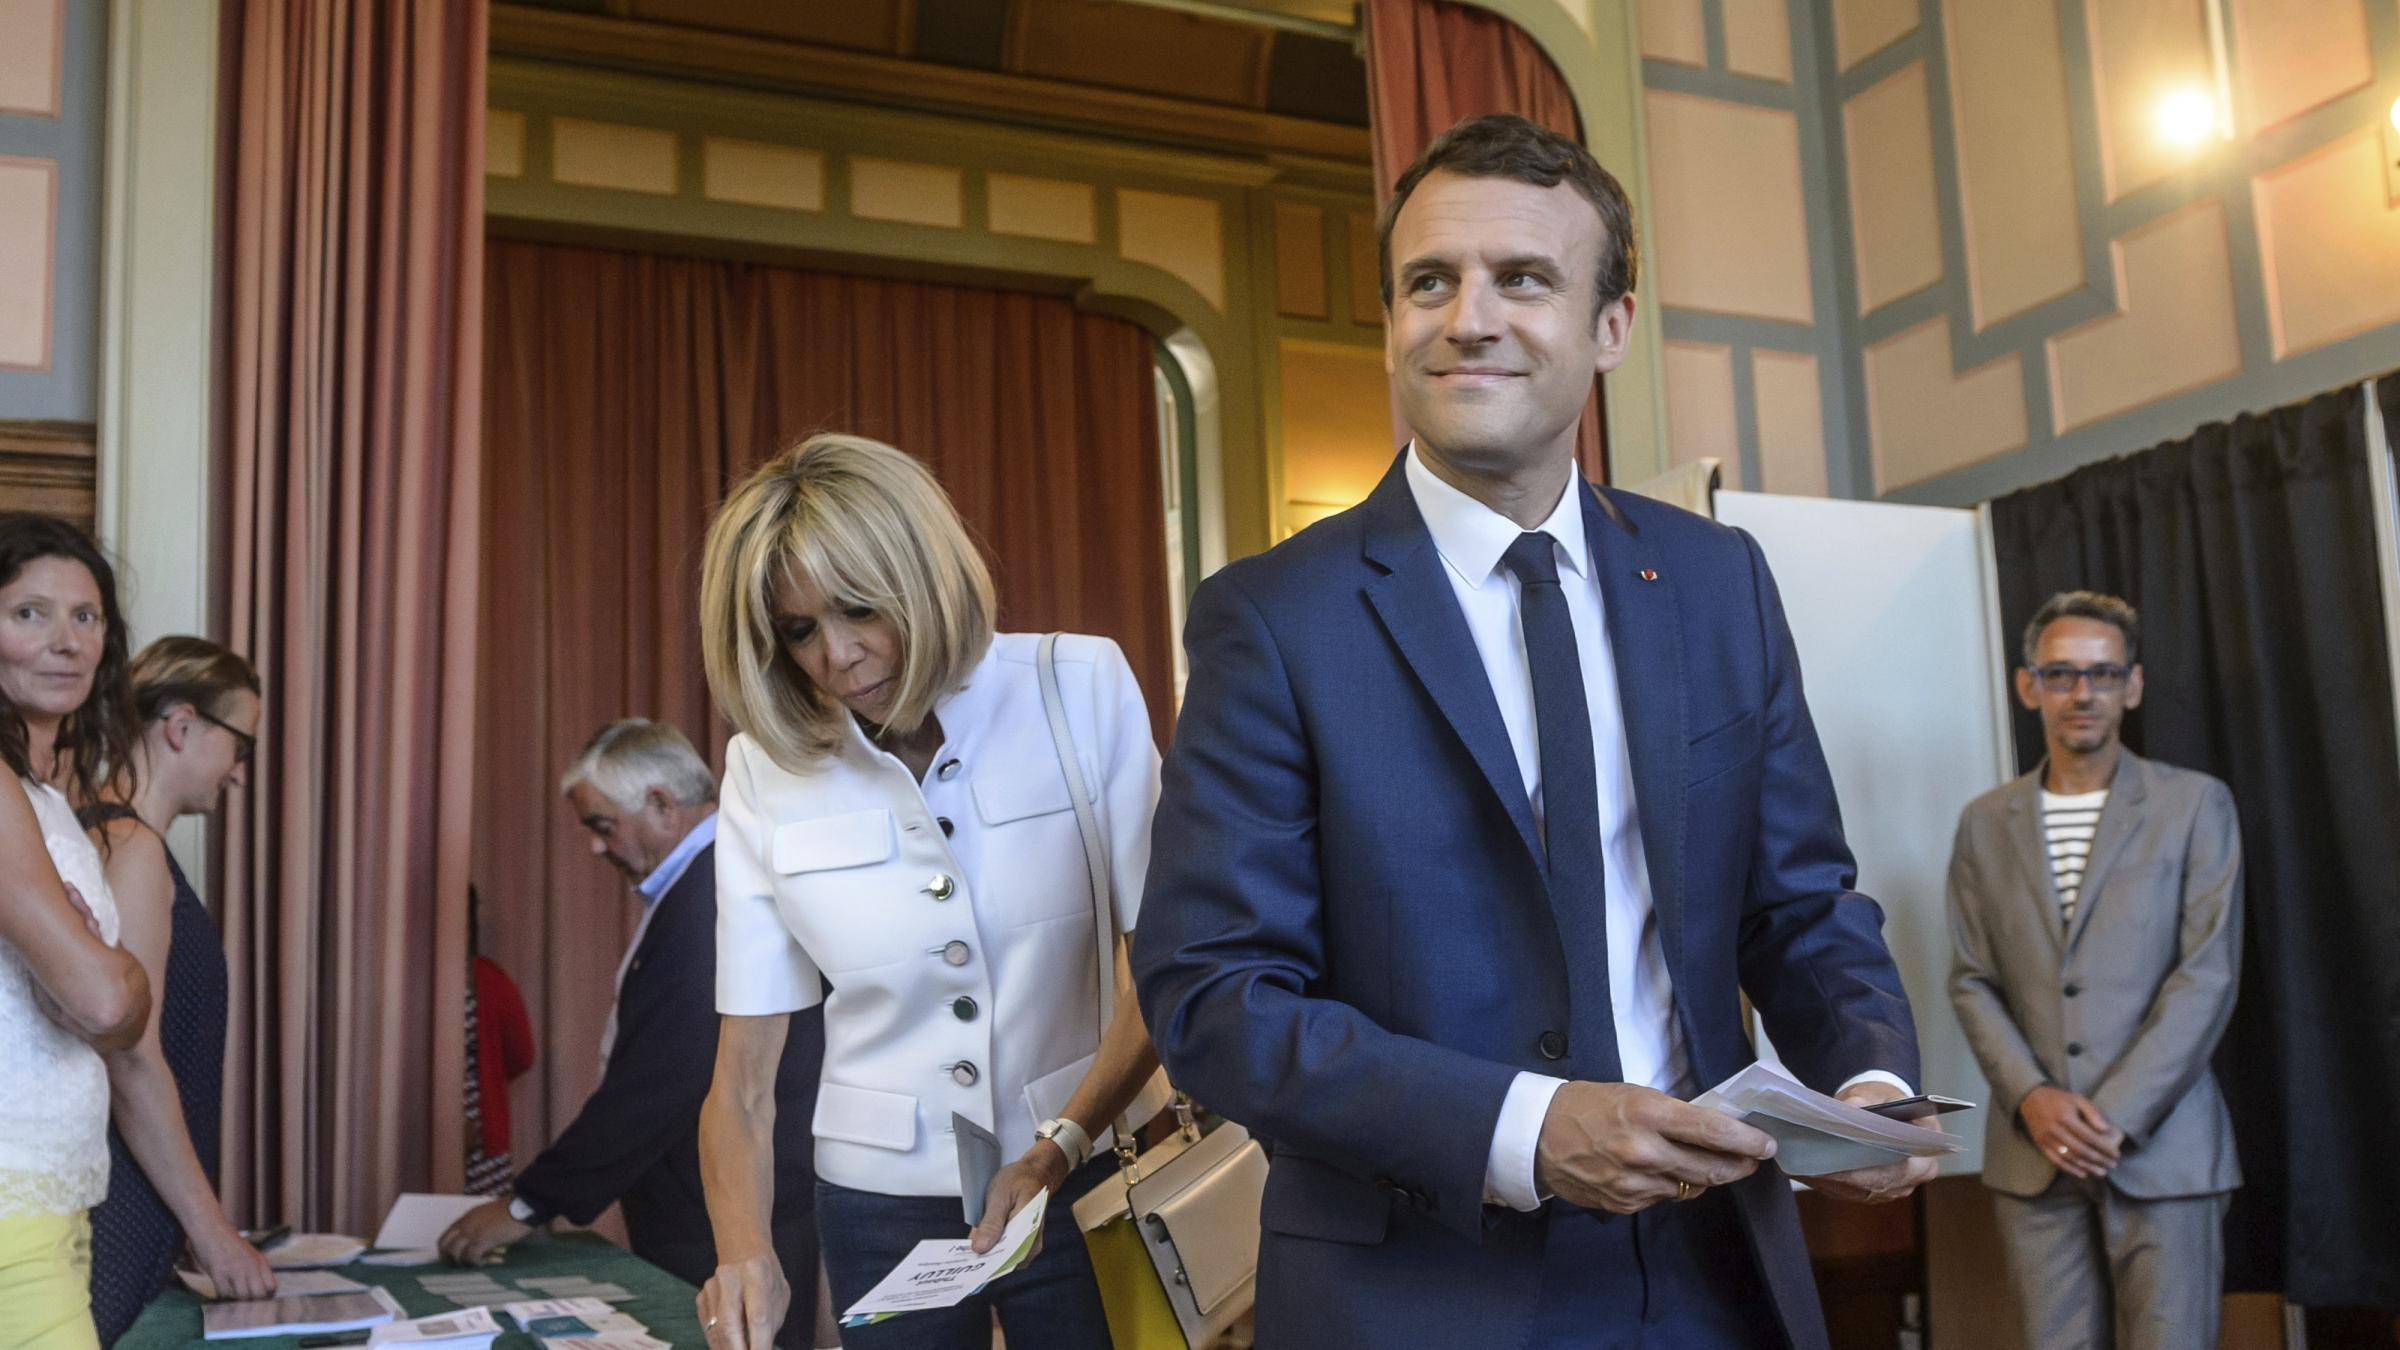 Emmanuel Macron's takeover of French politics is all but complete